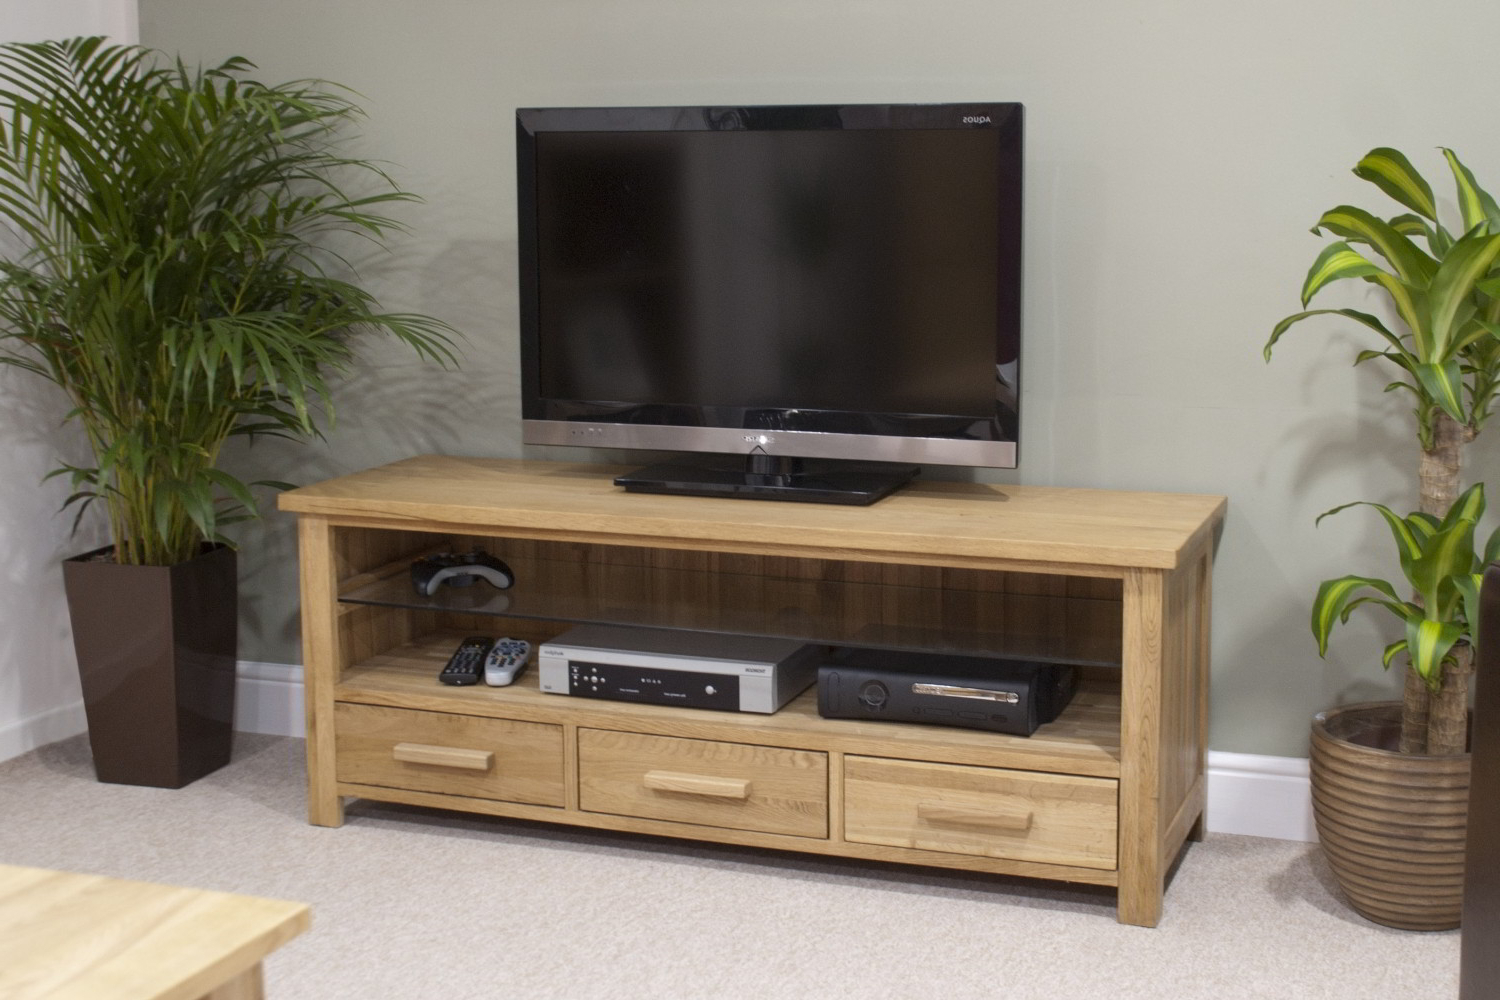 Best And Newest Oak Furniture Tv Stands Within Eton Solid Oak Living Room Furniture Widescreen Tv Cabinet Stand (View 1 of 20)